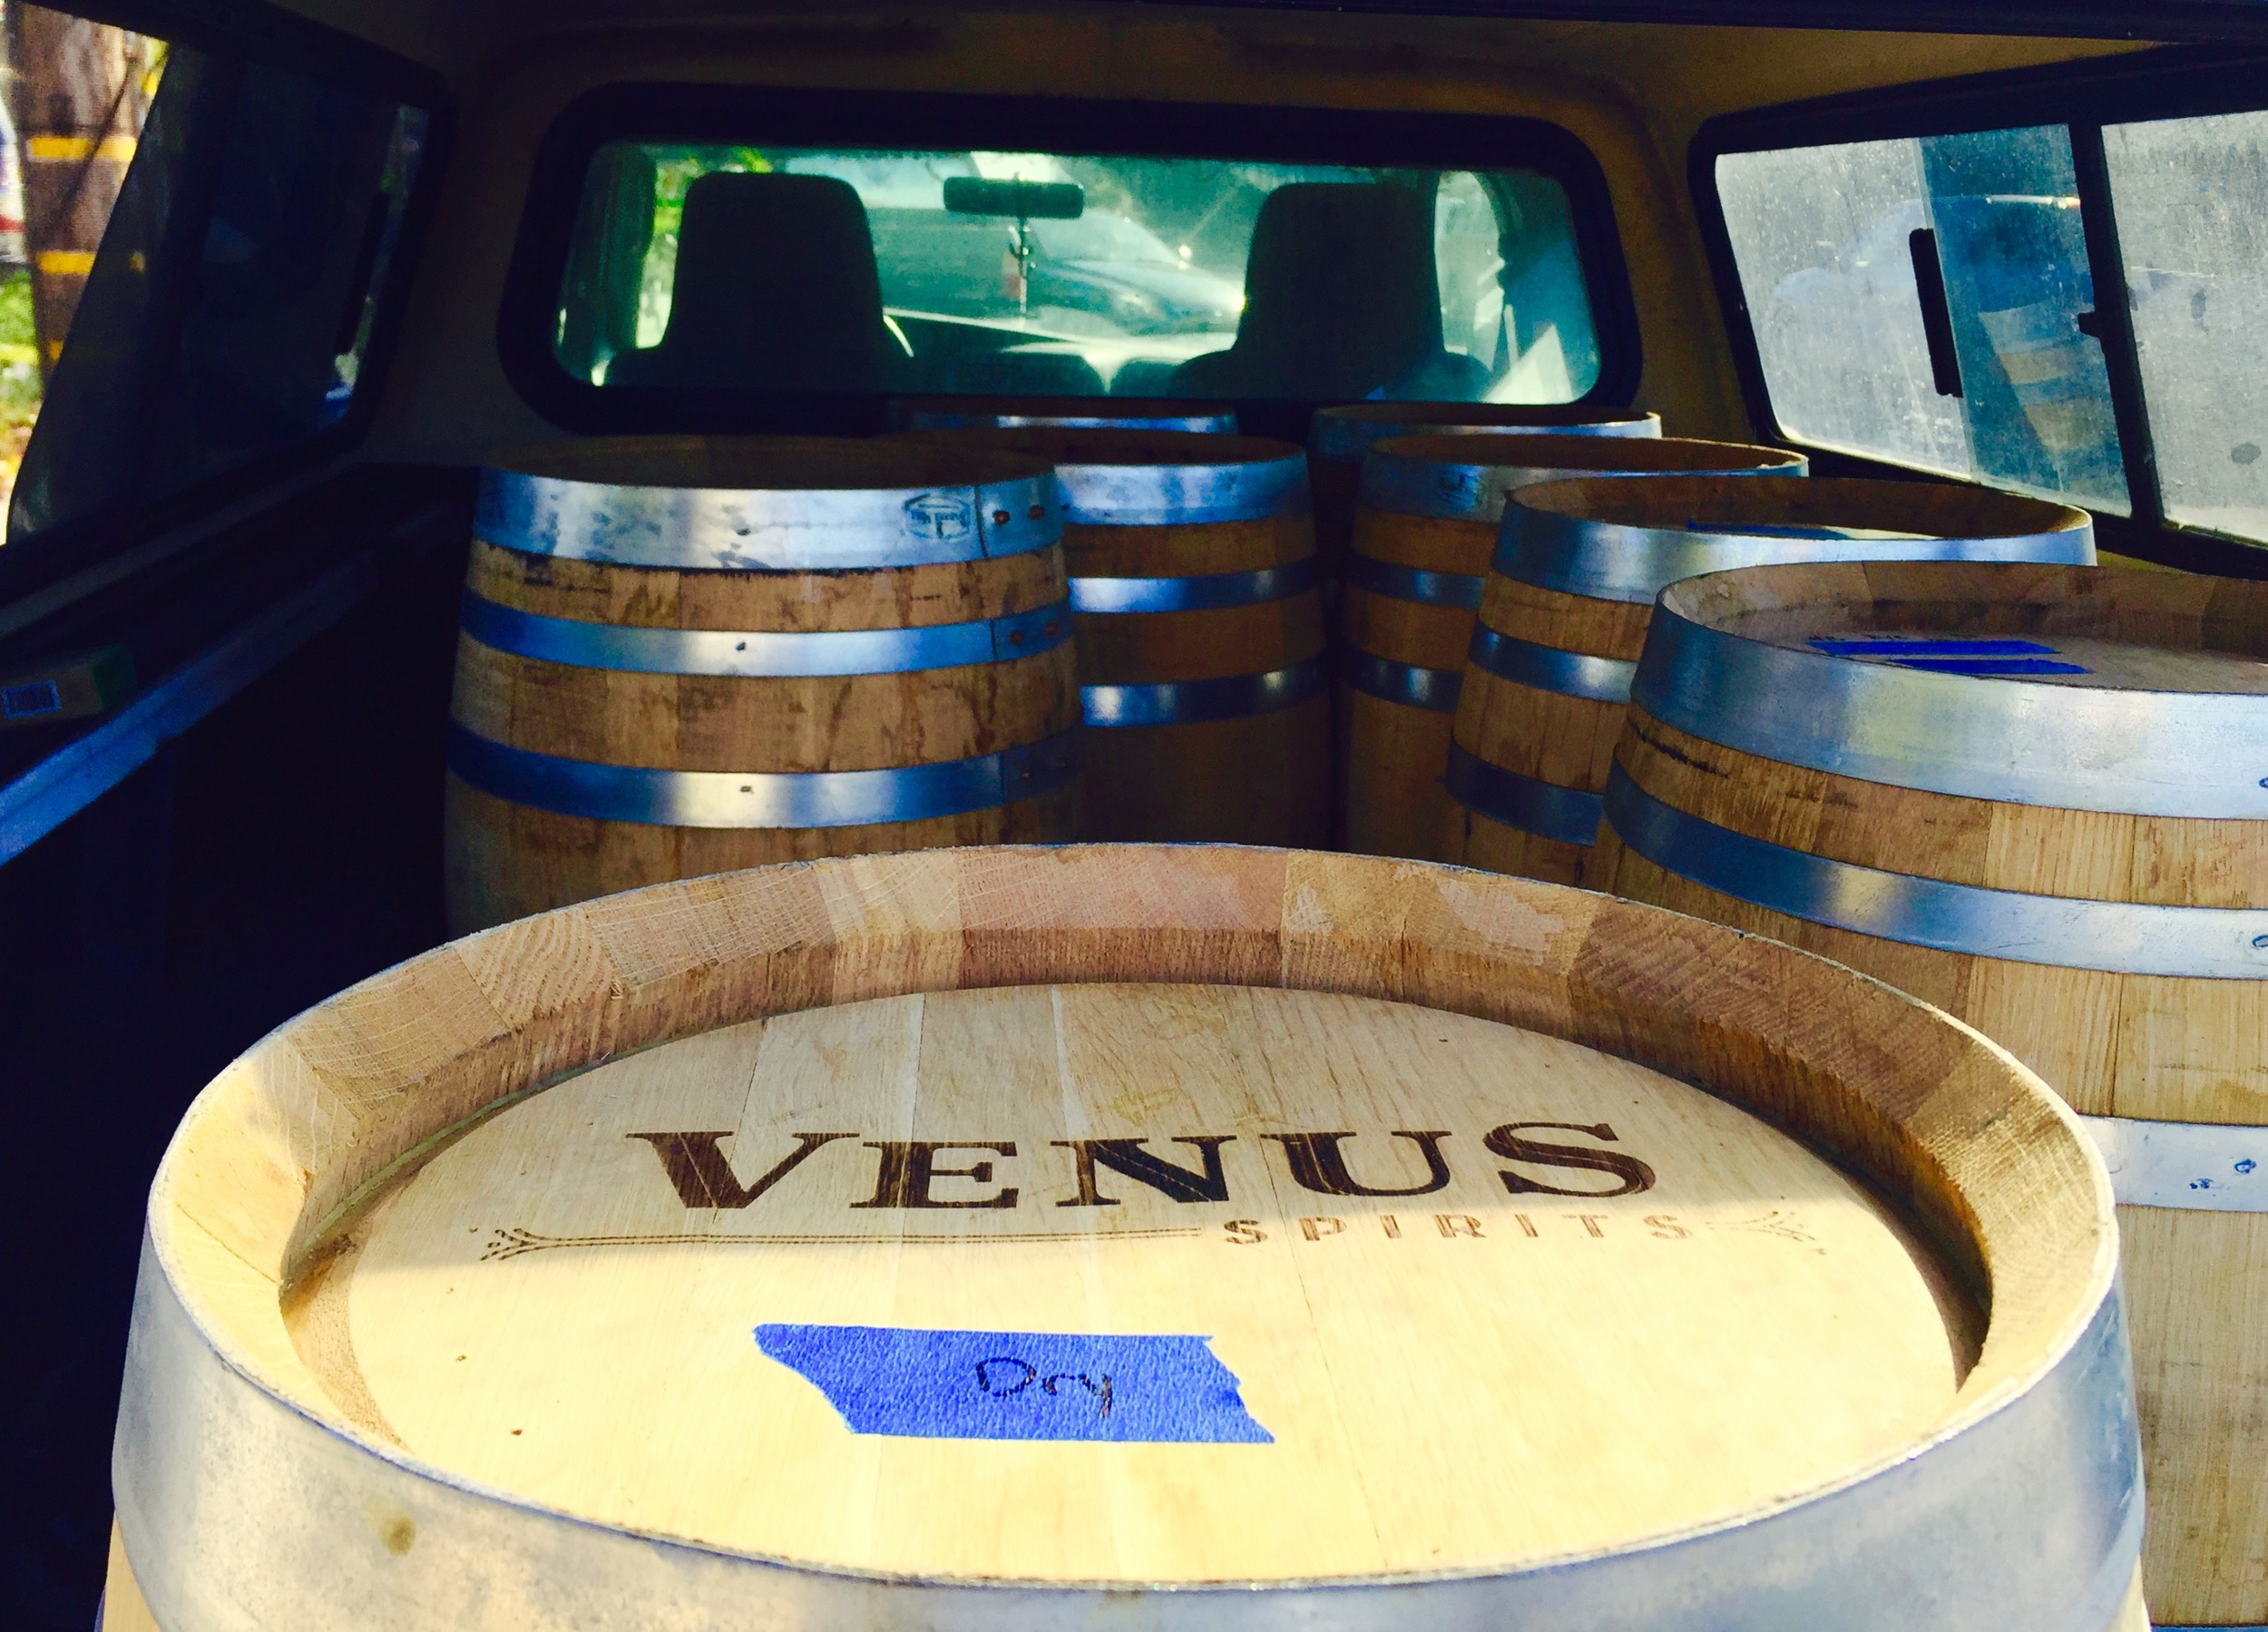 Blue Agave Tequila and Wayward Whiskey barrels from Venus Spirits